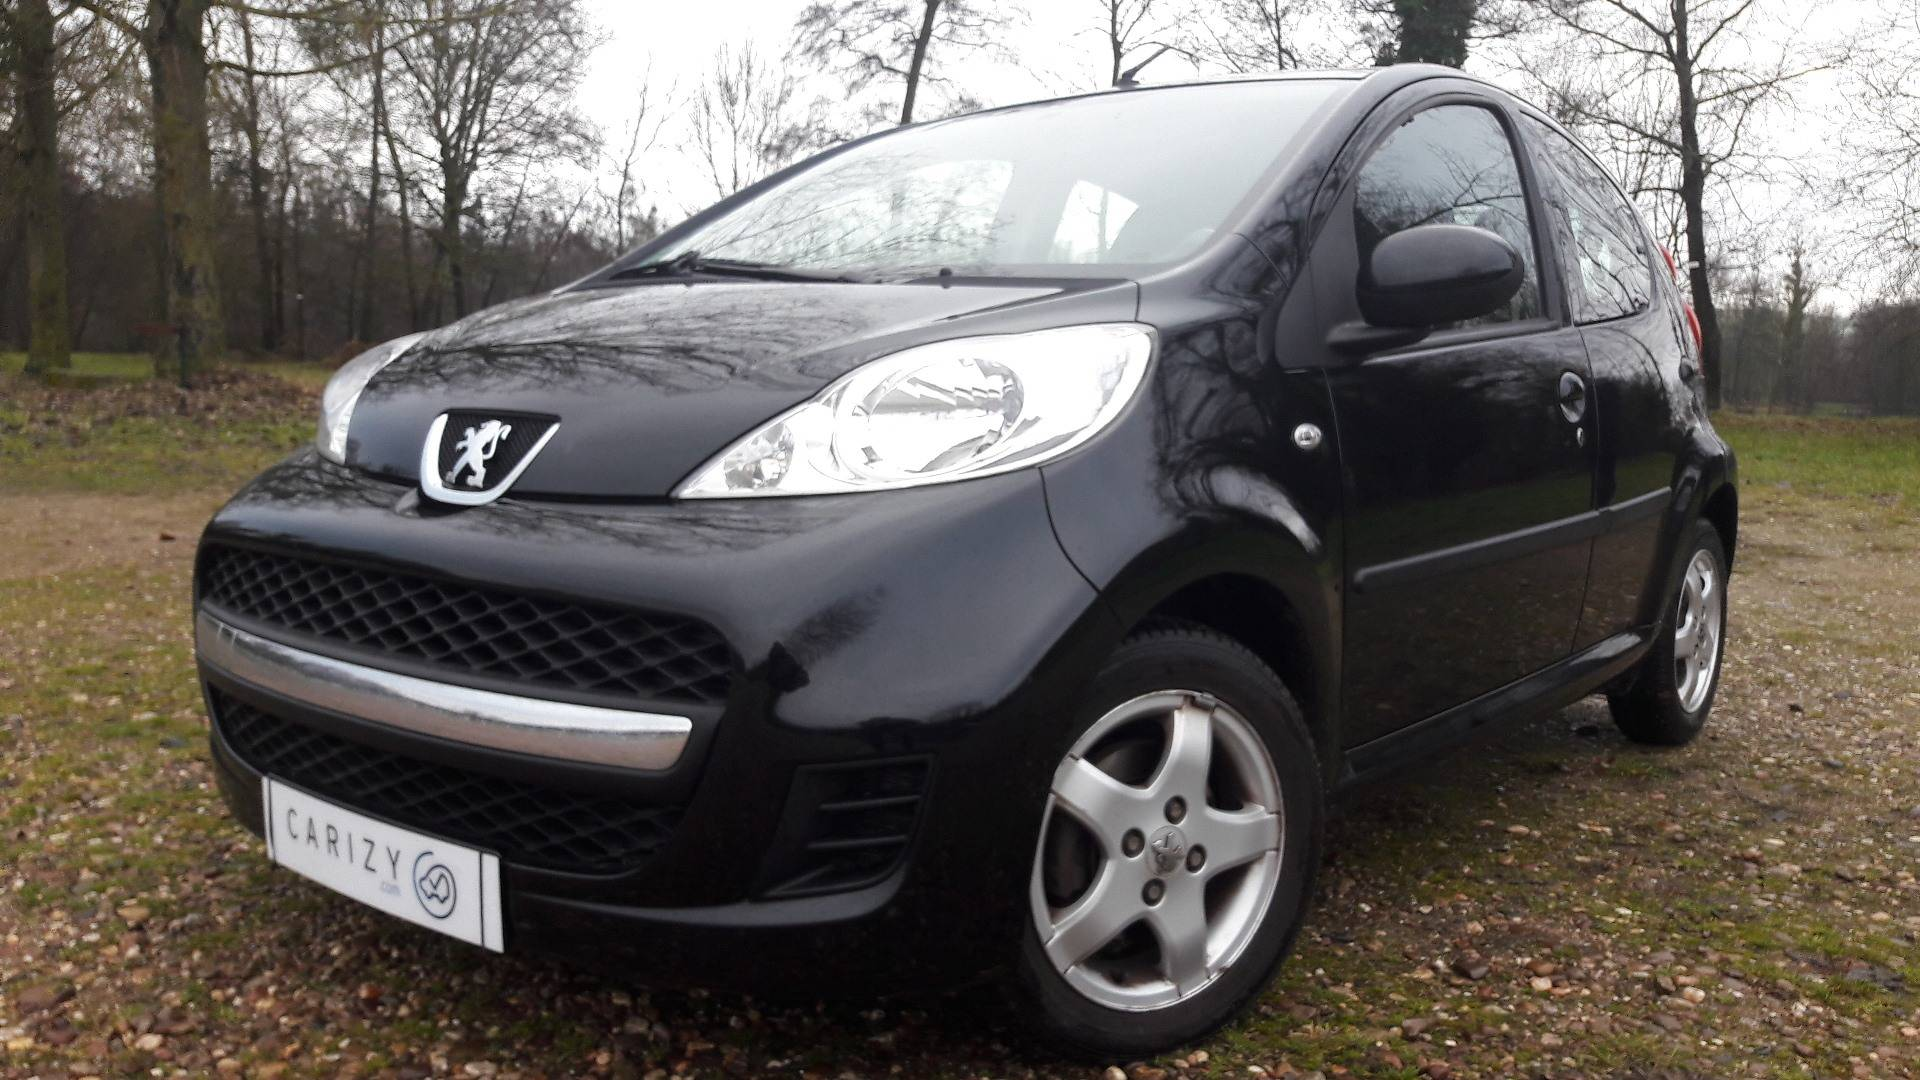 peugeot 107 d 39 occasion 1 0 70 black silver woippy carizy. Black Bedroom Furniture Sets. Home Design Ideas